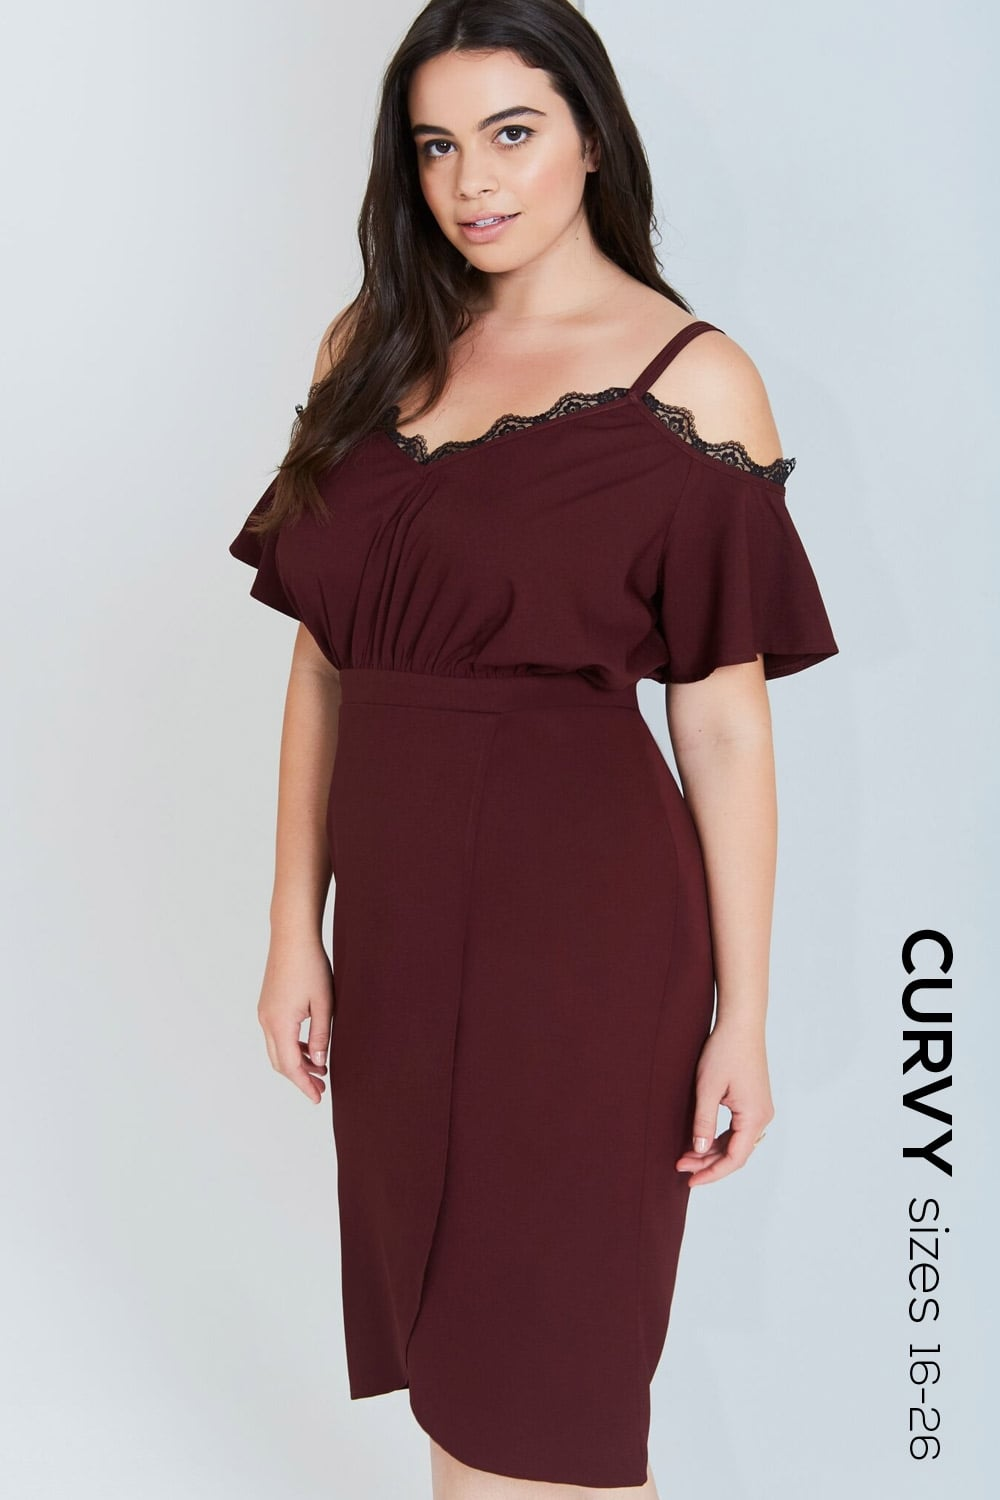 on curvy burgundy the shoulder dress with